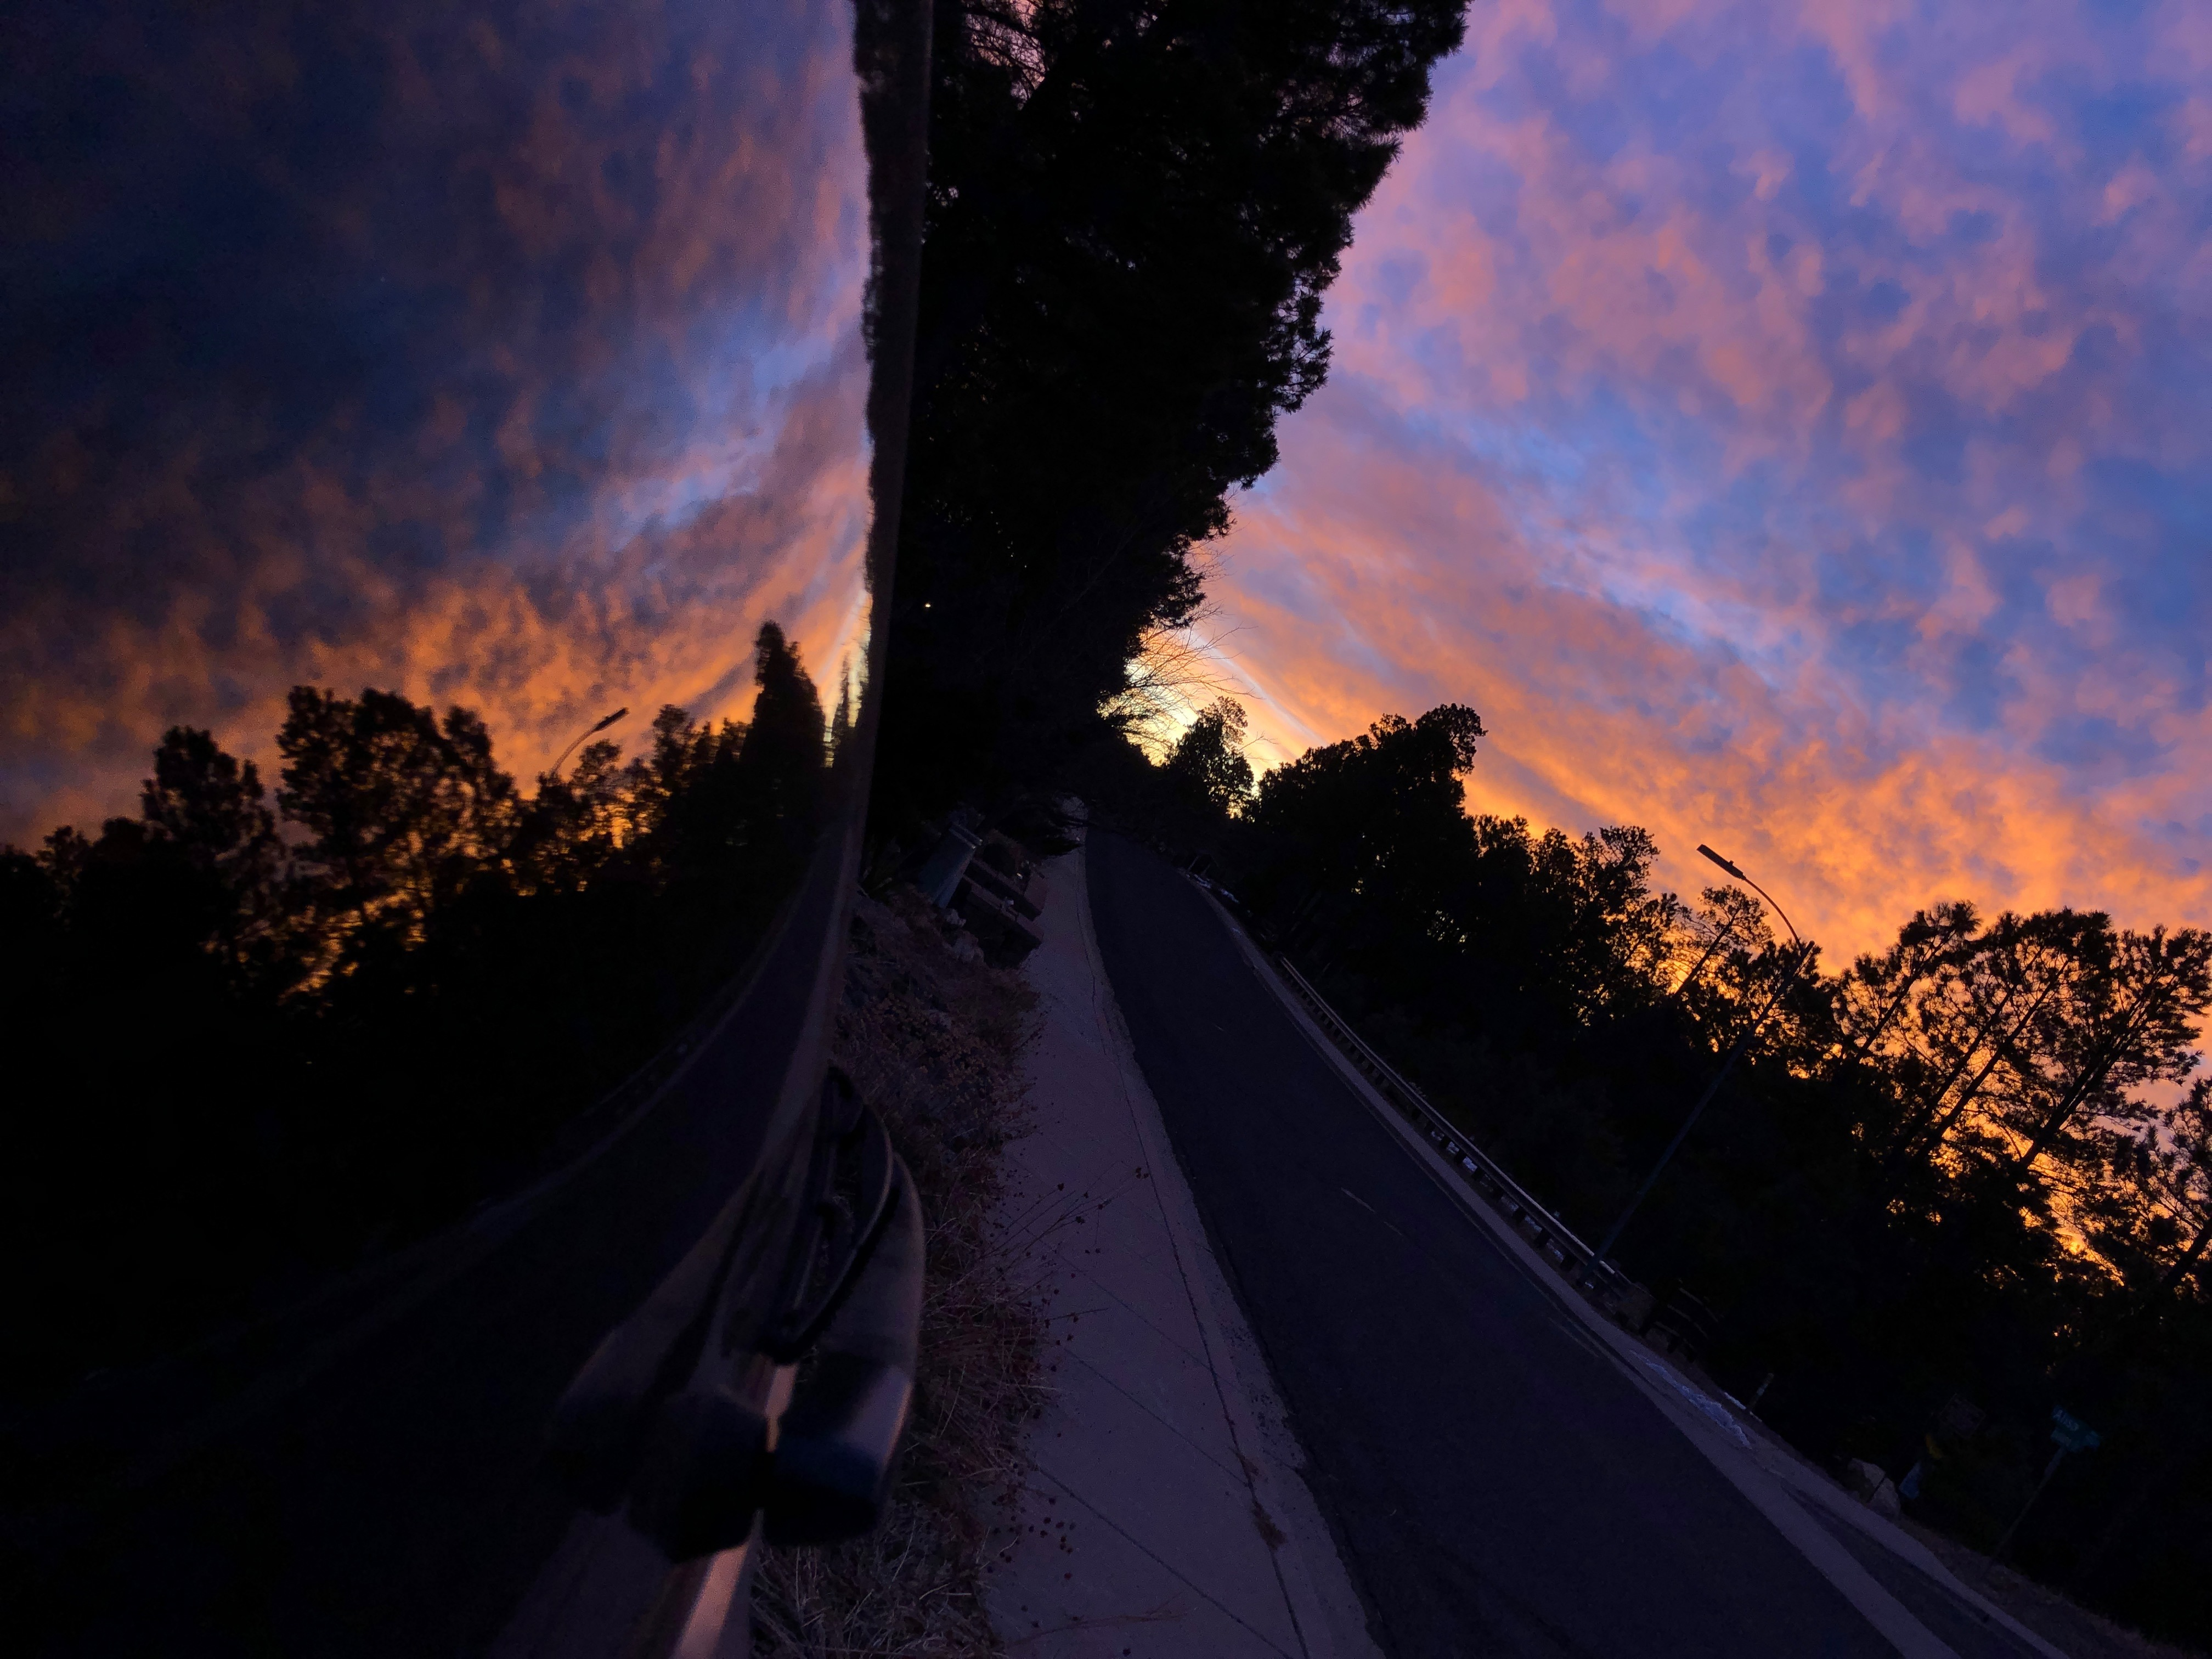 Photo of an orange and blue sunrise reflected in a car windshield